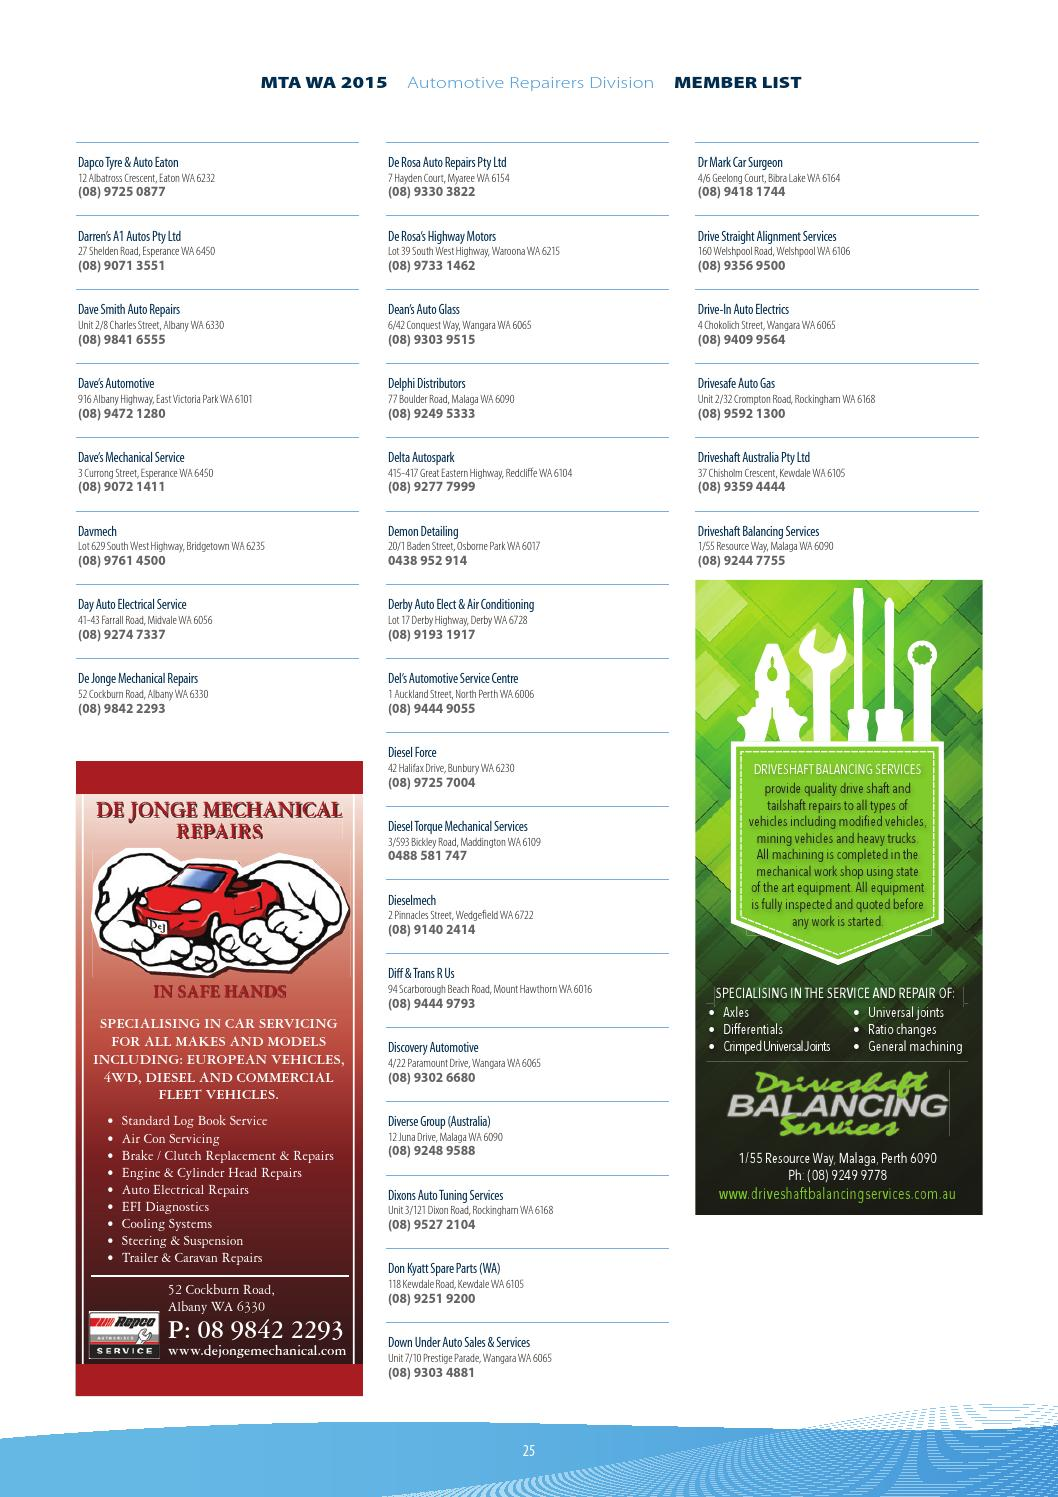 2015 MTA WA Members eDirectory by arkmedia4217 - issuu